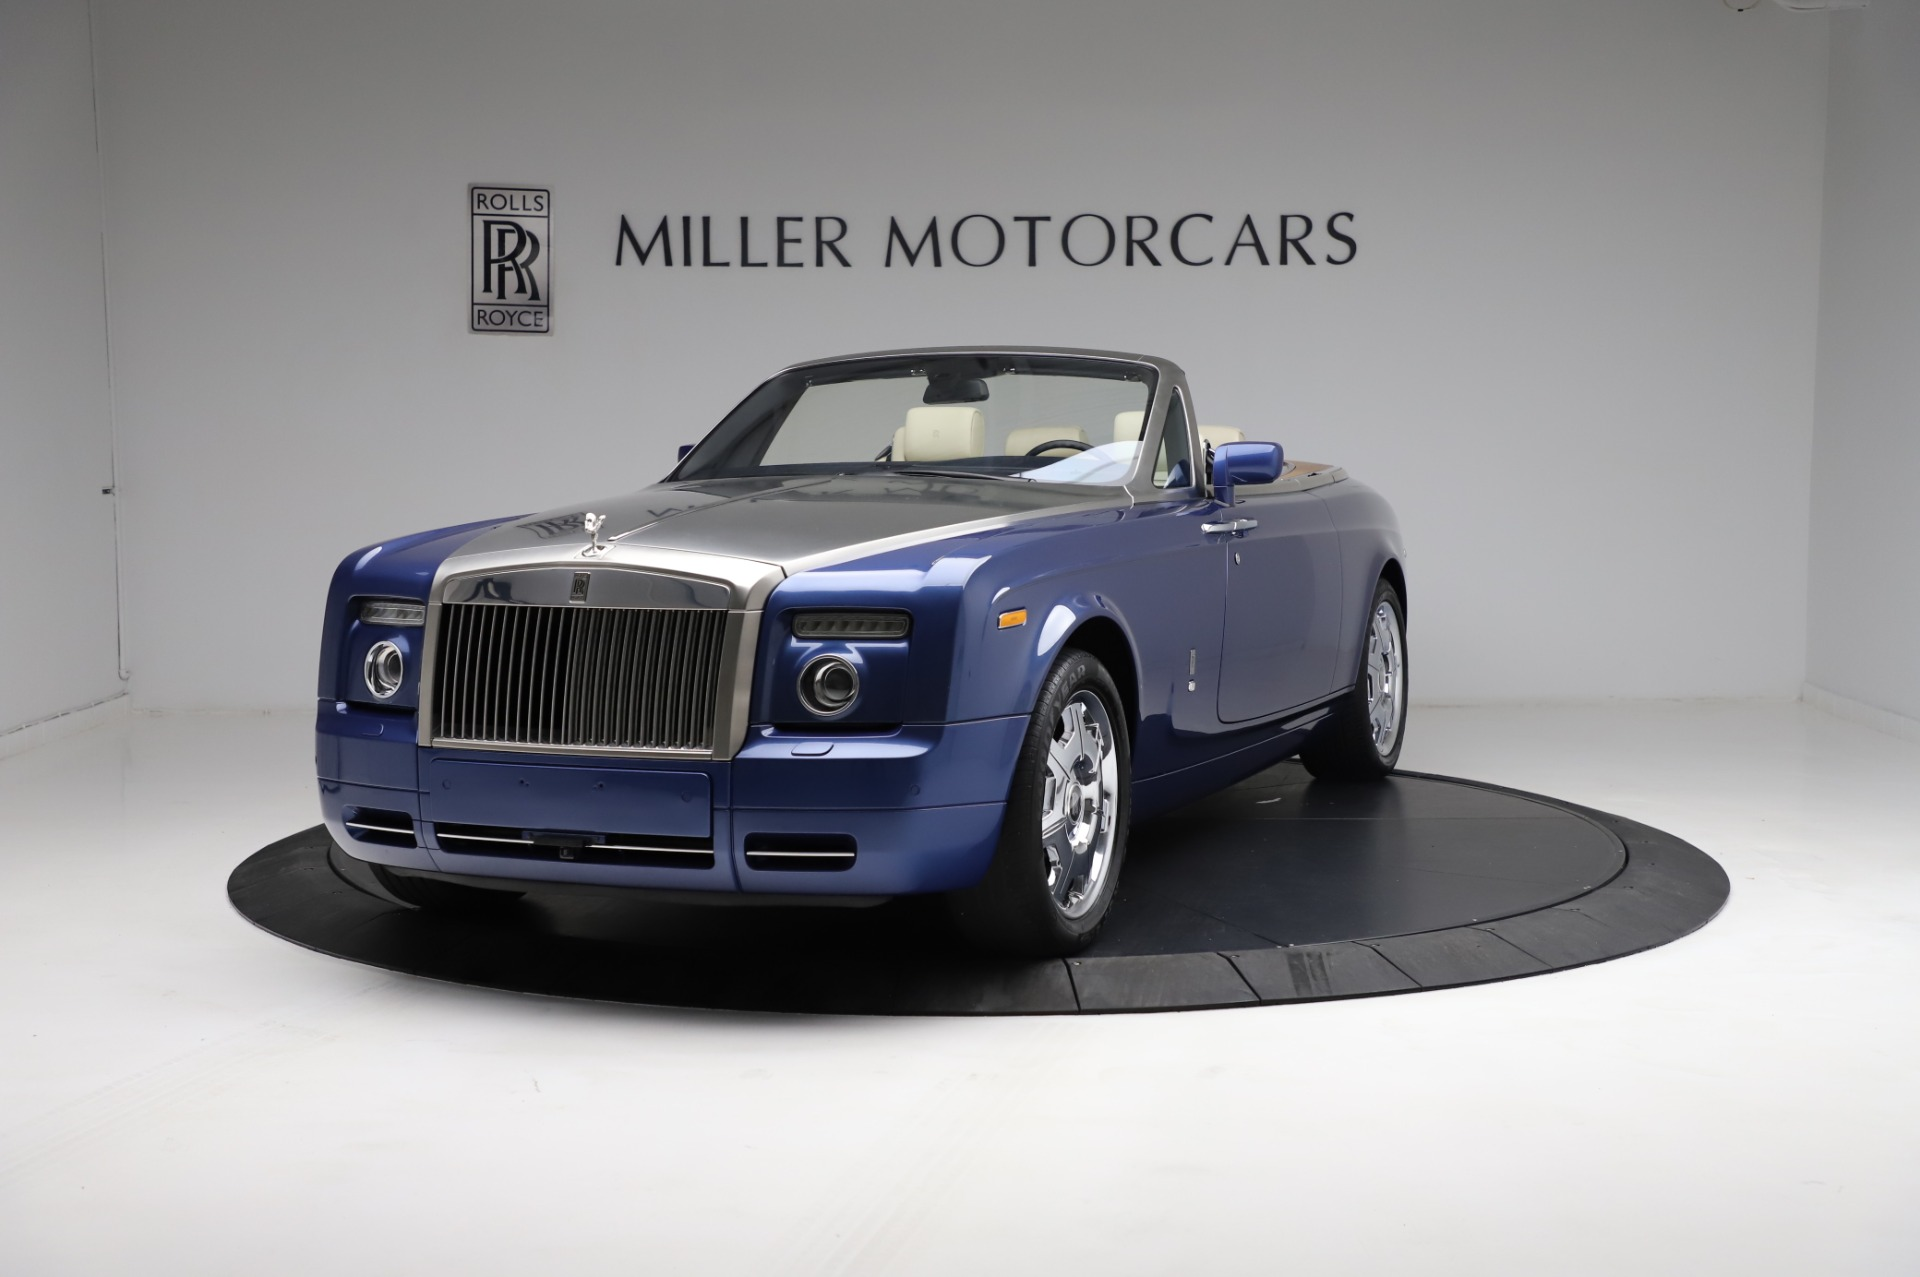 Used 2009 Rolls-Royce Phantom Drophead Coupe for sale $225,900 at Rolls-Royce Motor Cars Greenwich in Greenwich CT 06830 1